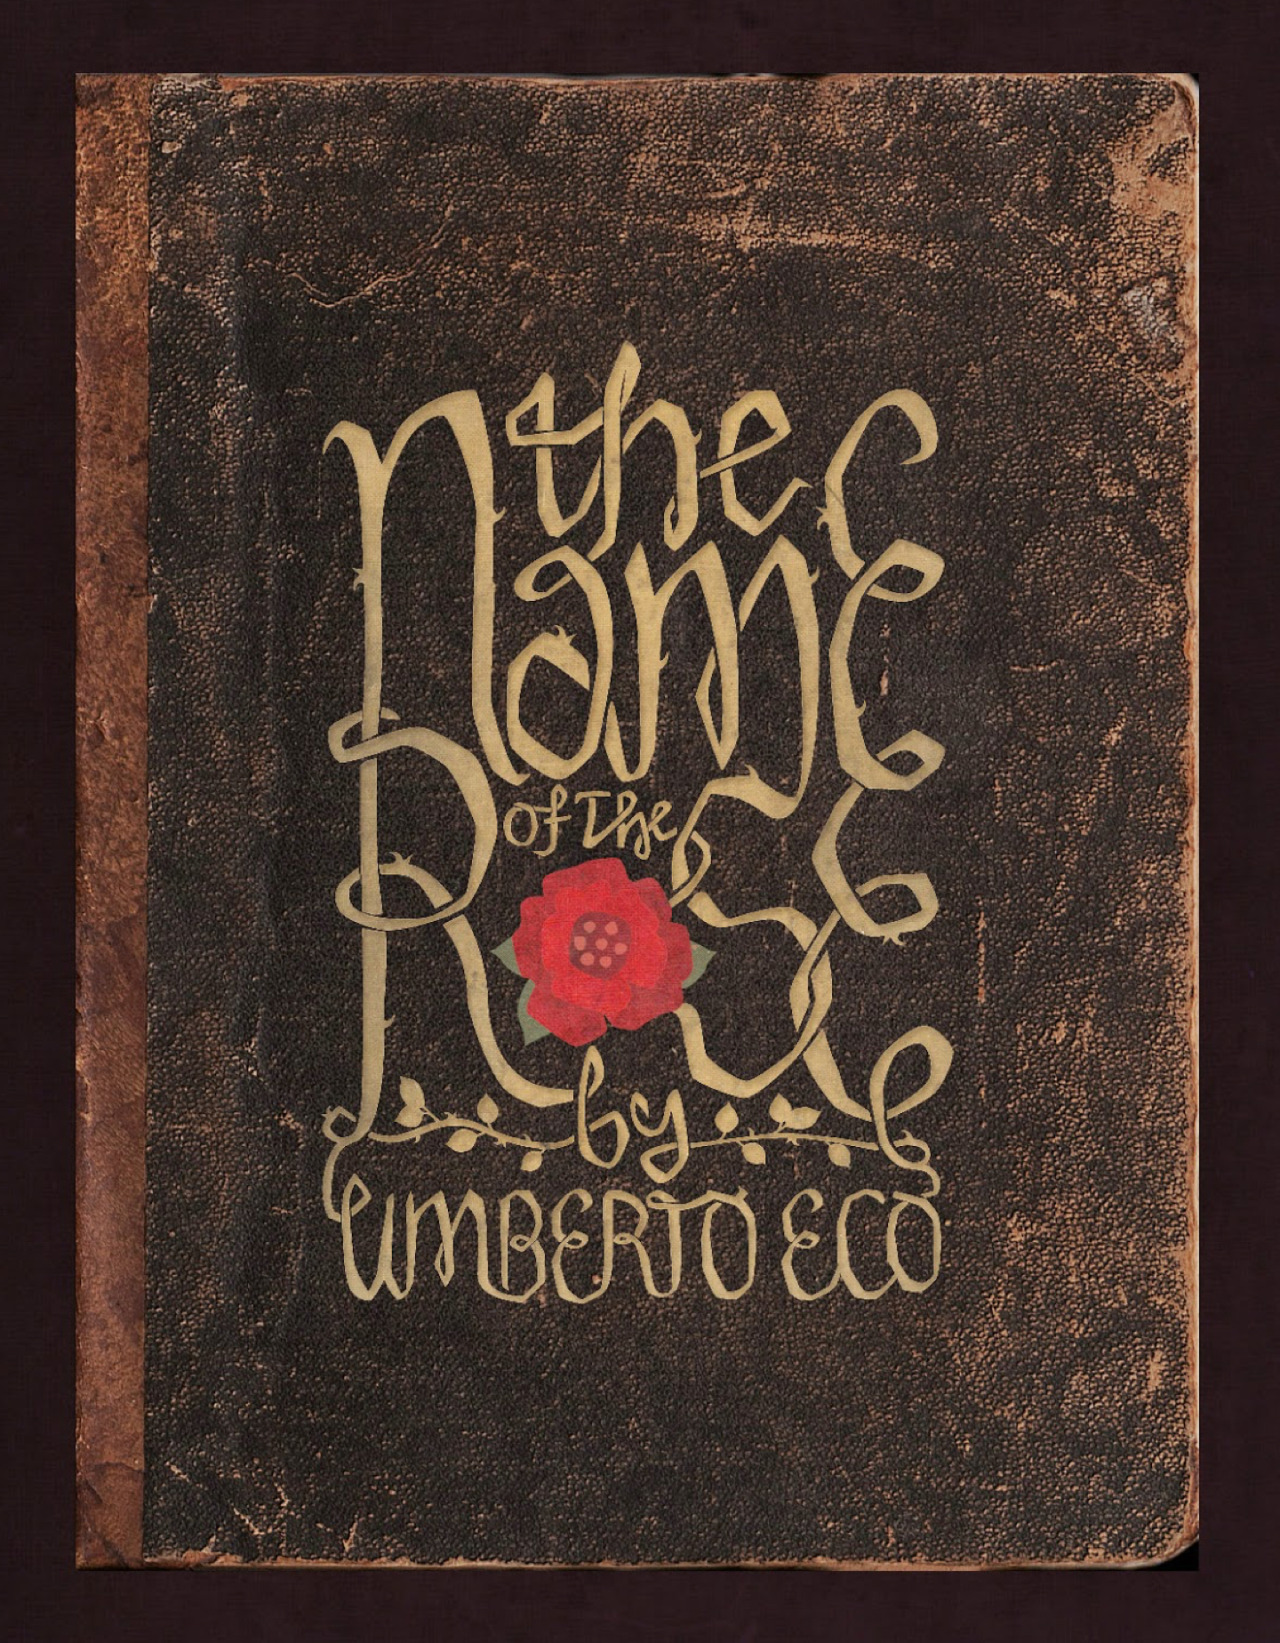 A-MUSED - LAUGHTER IN THE NAME OF THE ROSE Umberto Eco's...